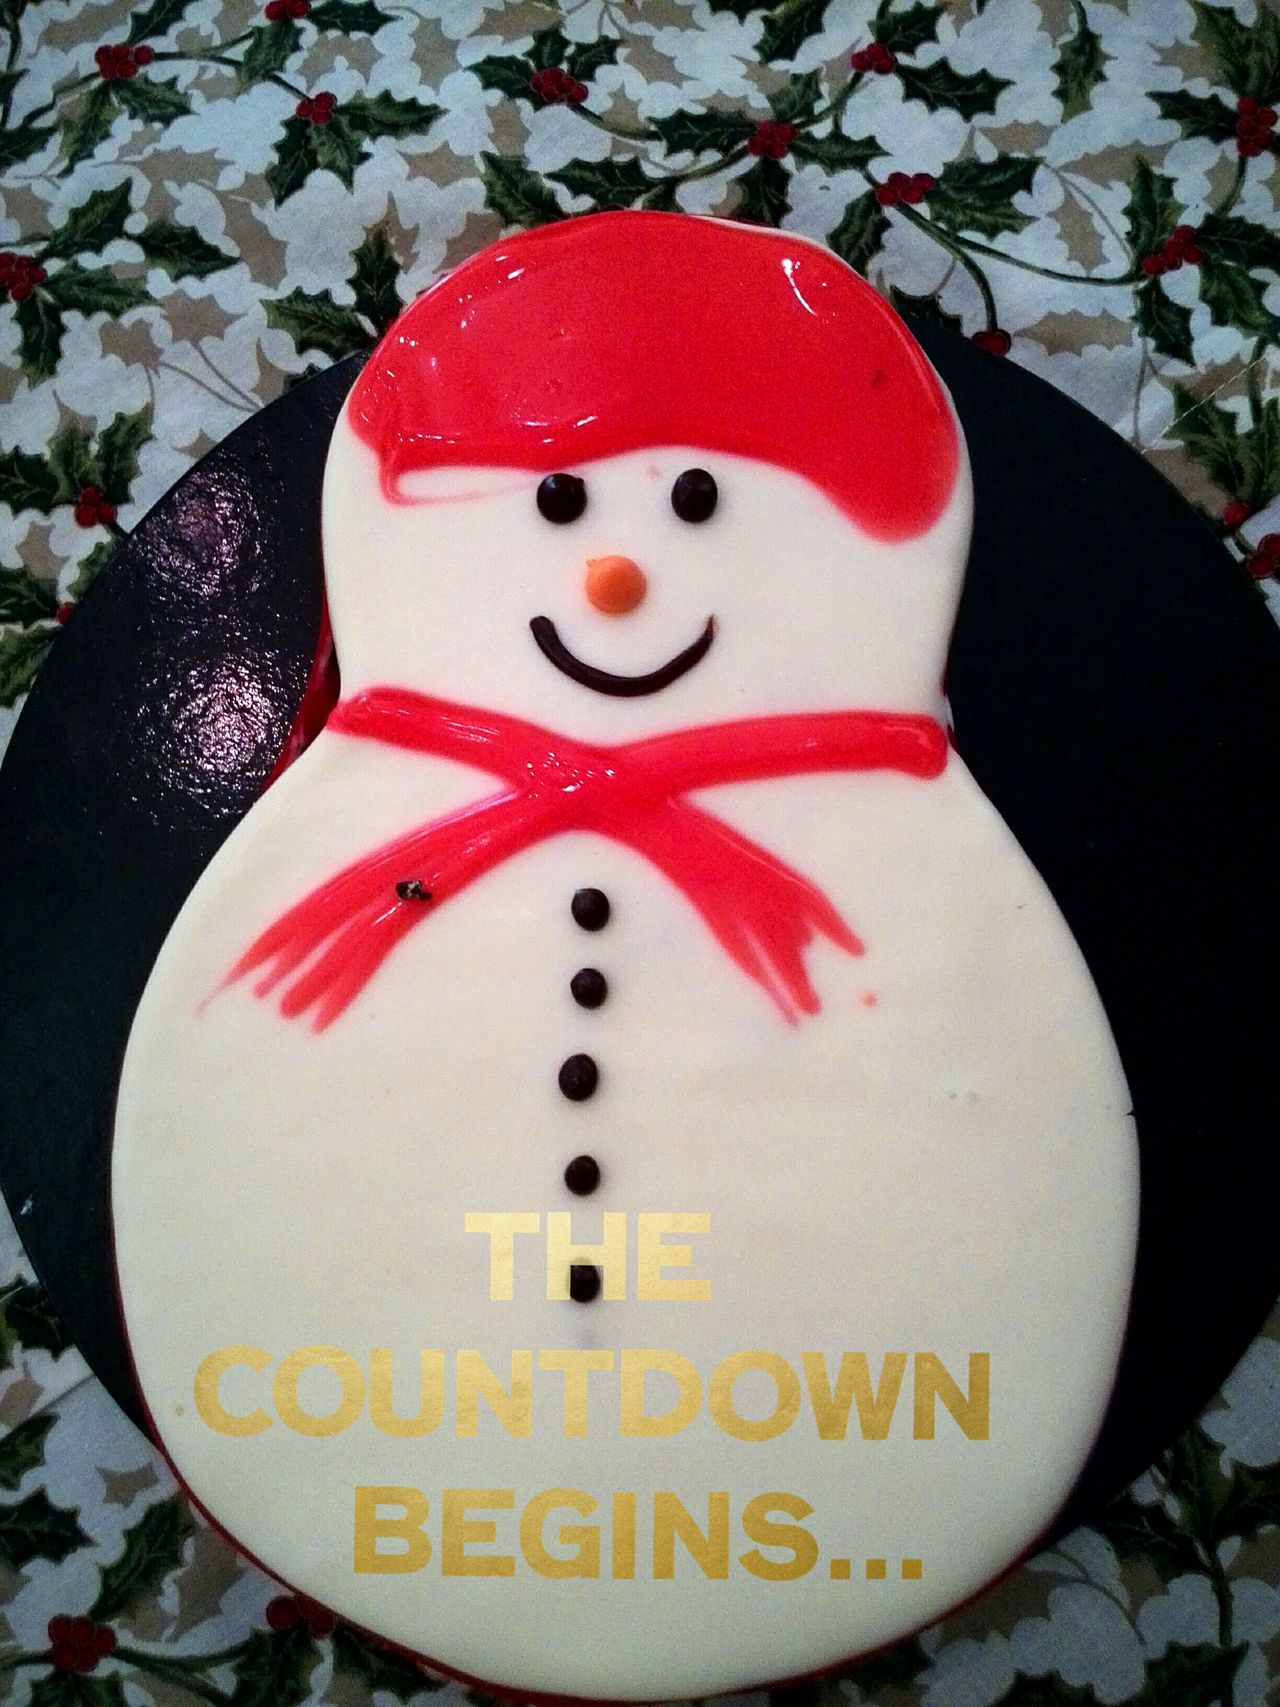 Holiday Desserts Eat Eat And Eat Chrstmas:)) Snowman⛄ Cake♥